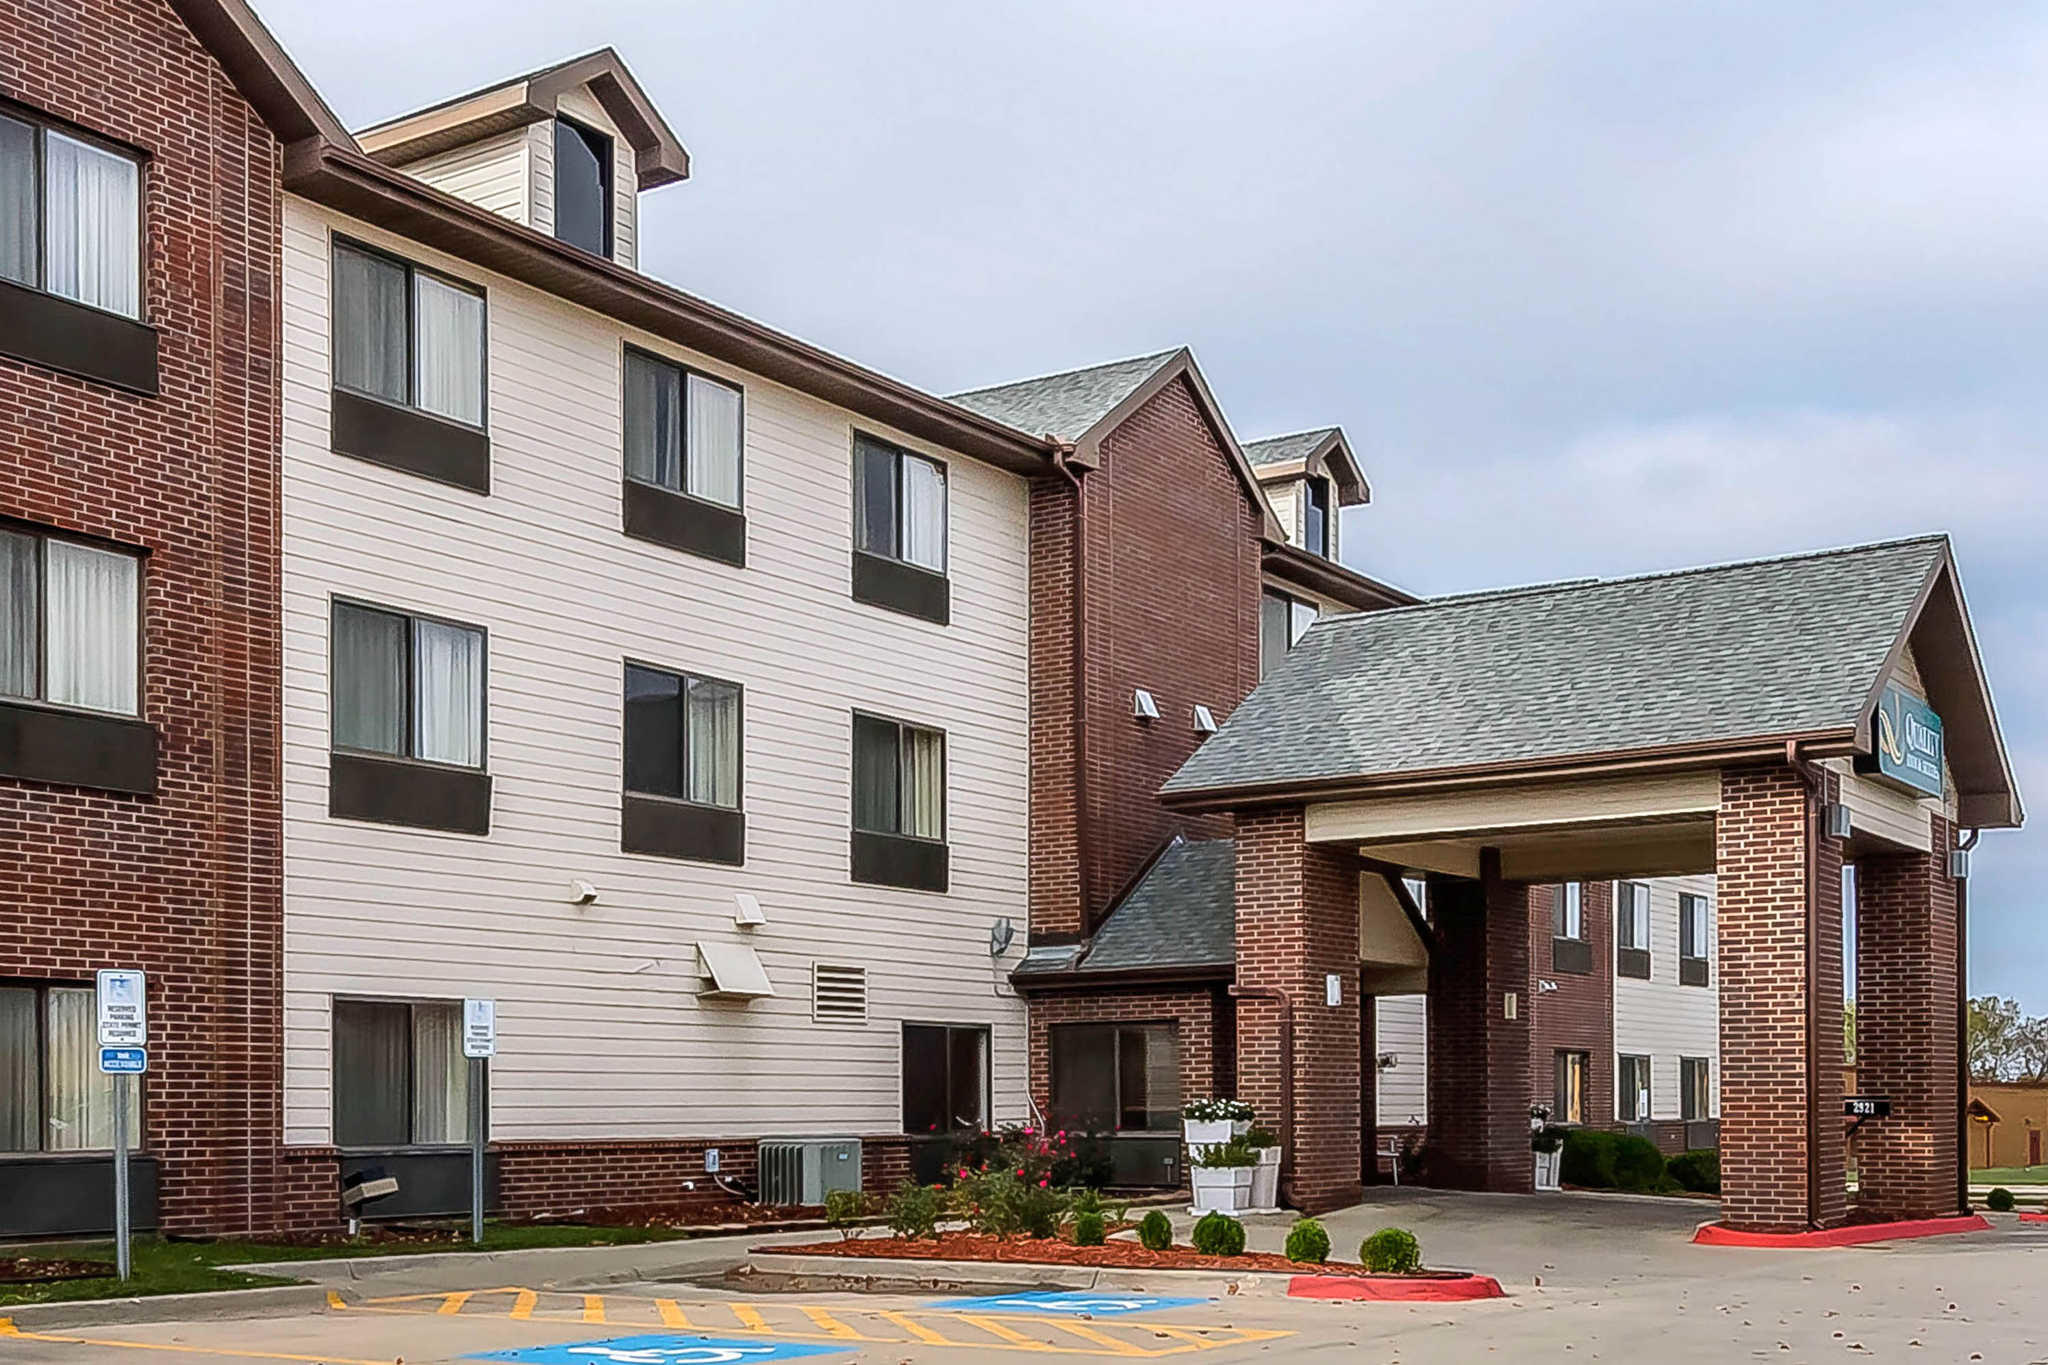 Hotel Traylor Reviews